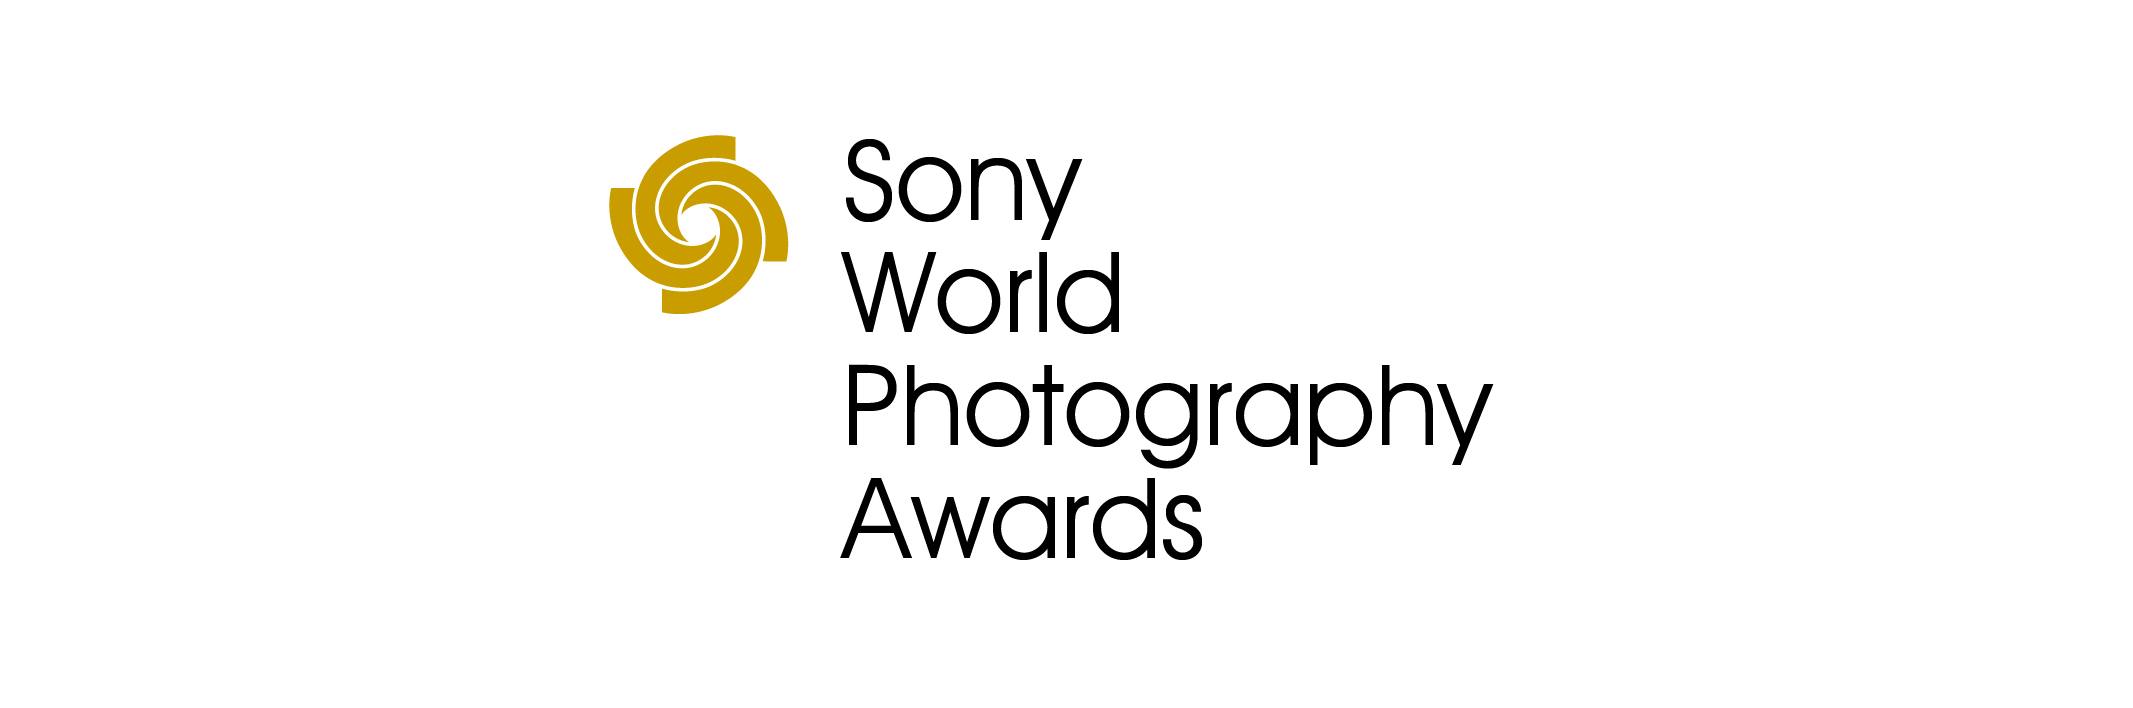 2021 Sony World Photography Awards